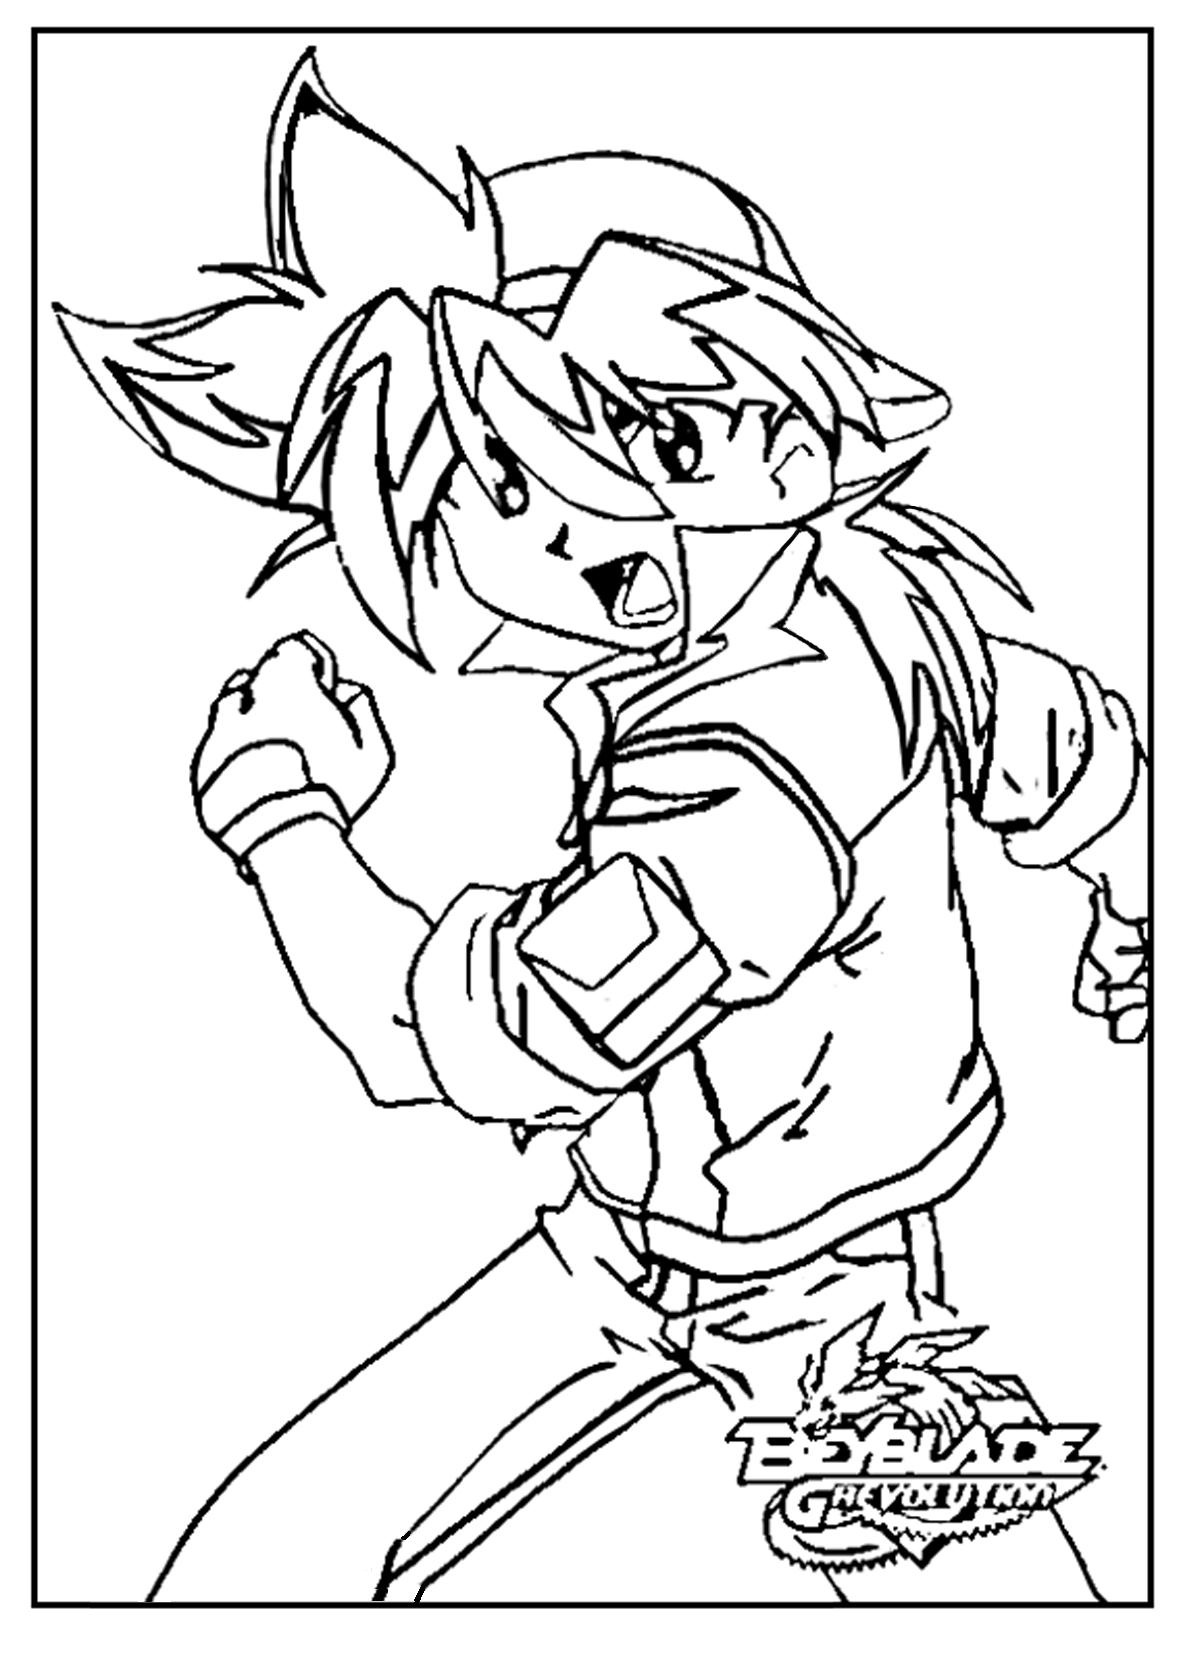 Incredible Beyblade coloring page to print and color for free